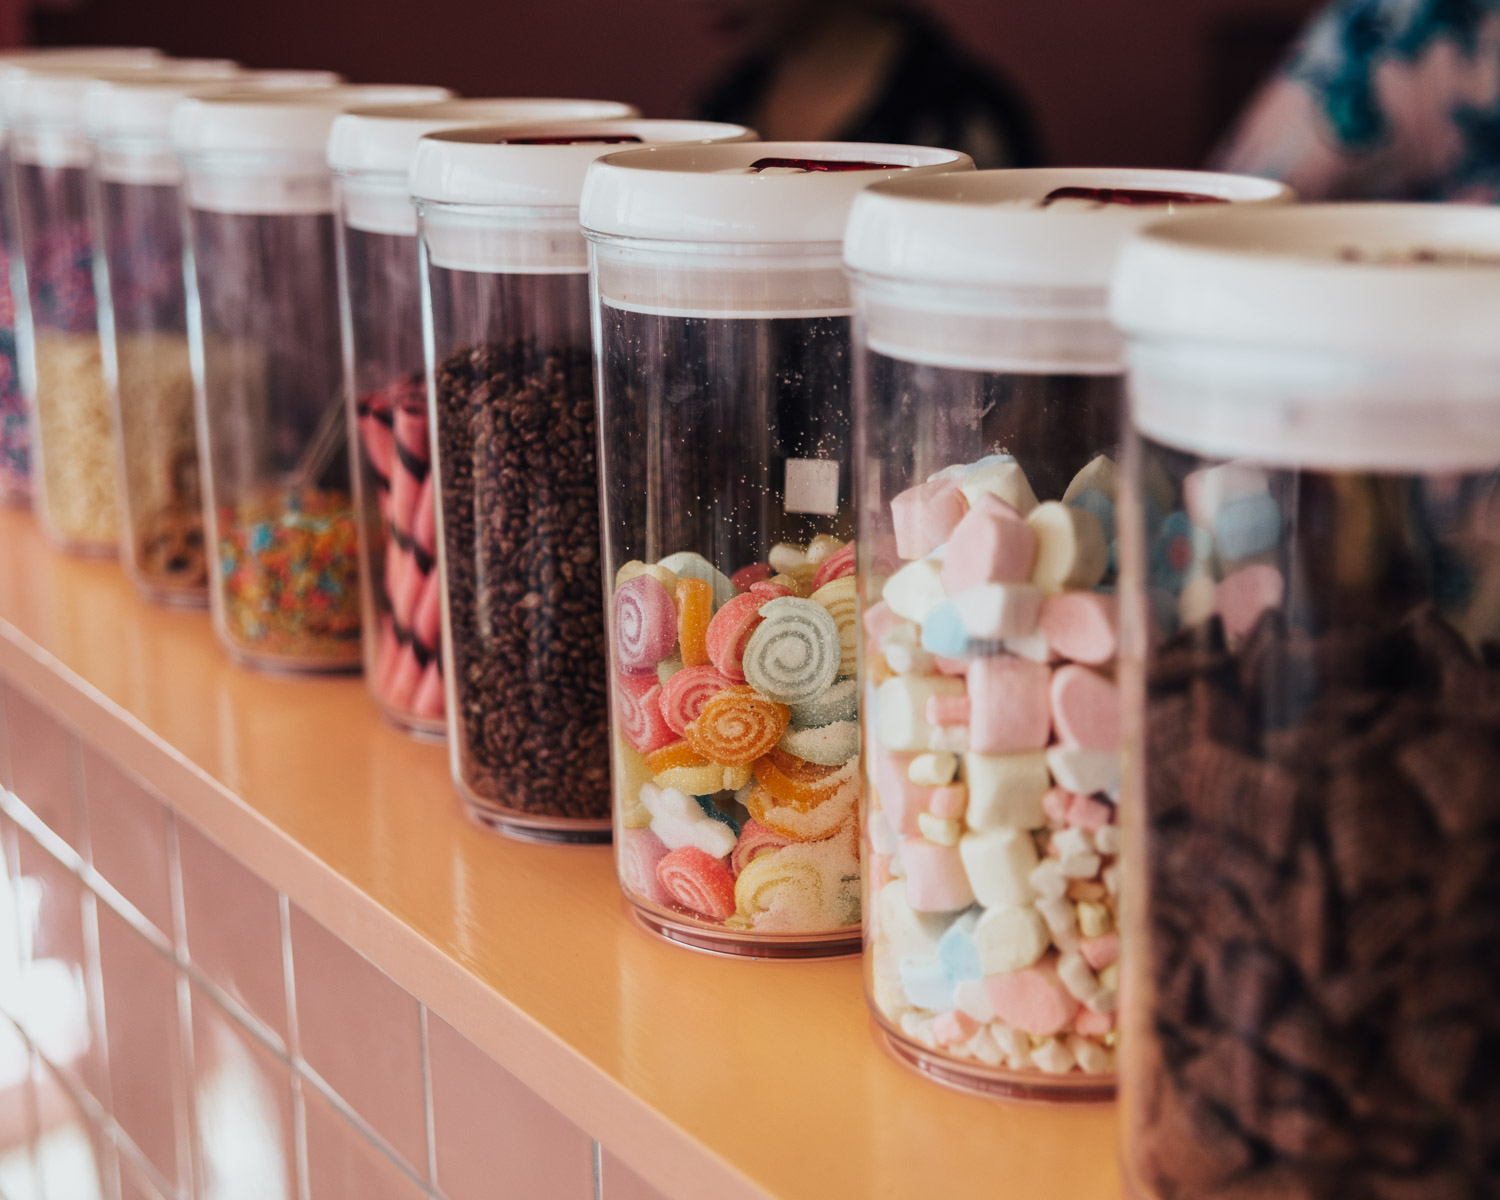 Choose your toppings at Pink Planter Cafe, Bangkok